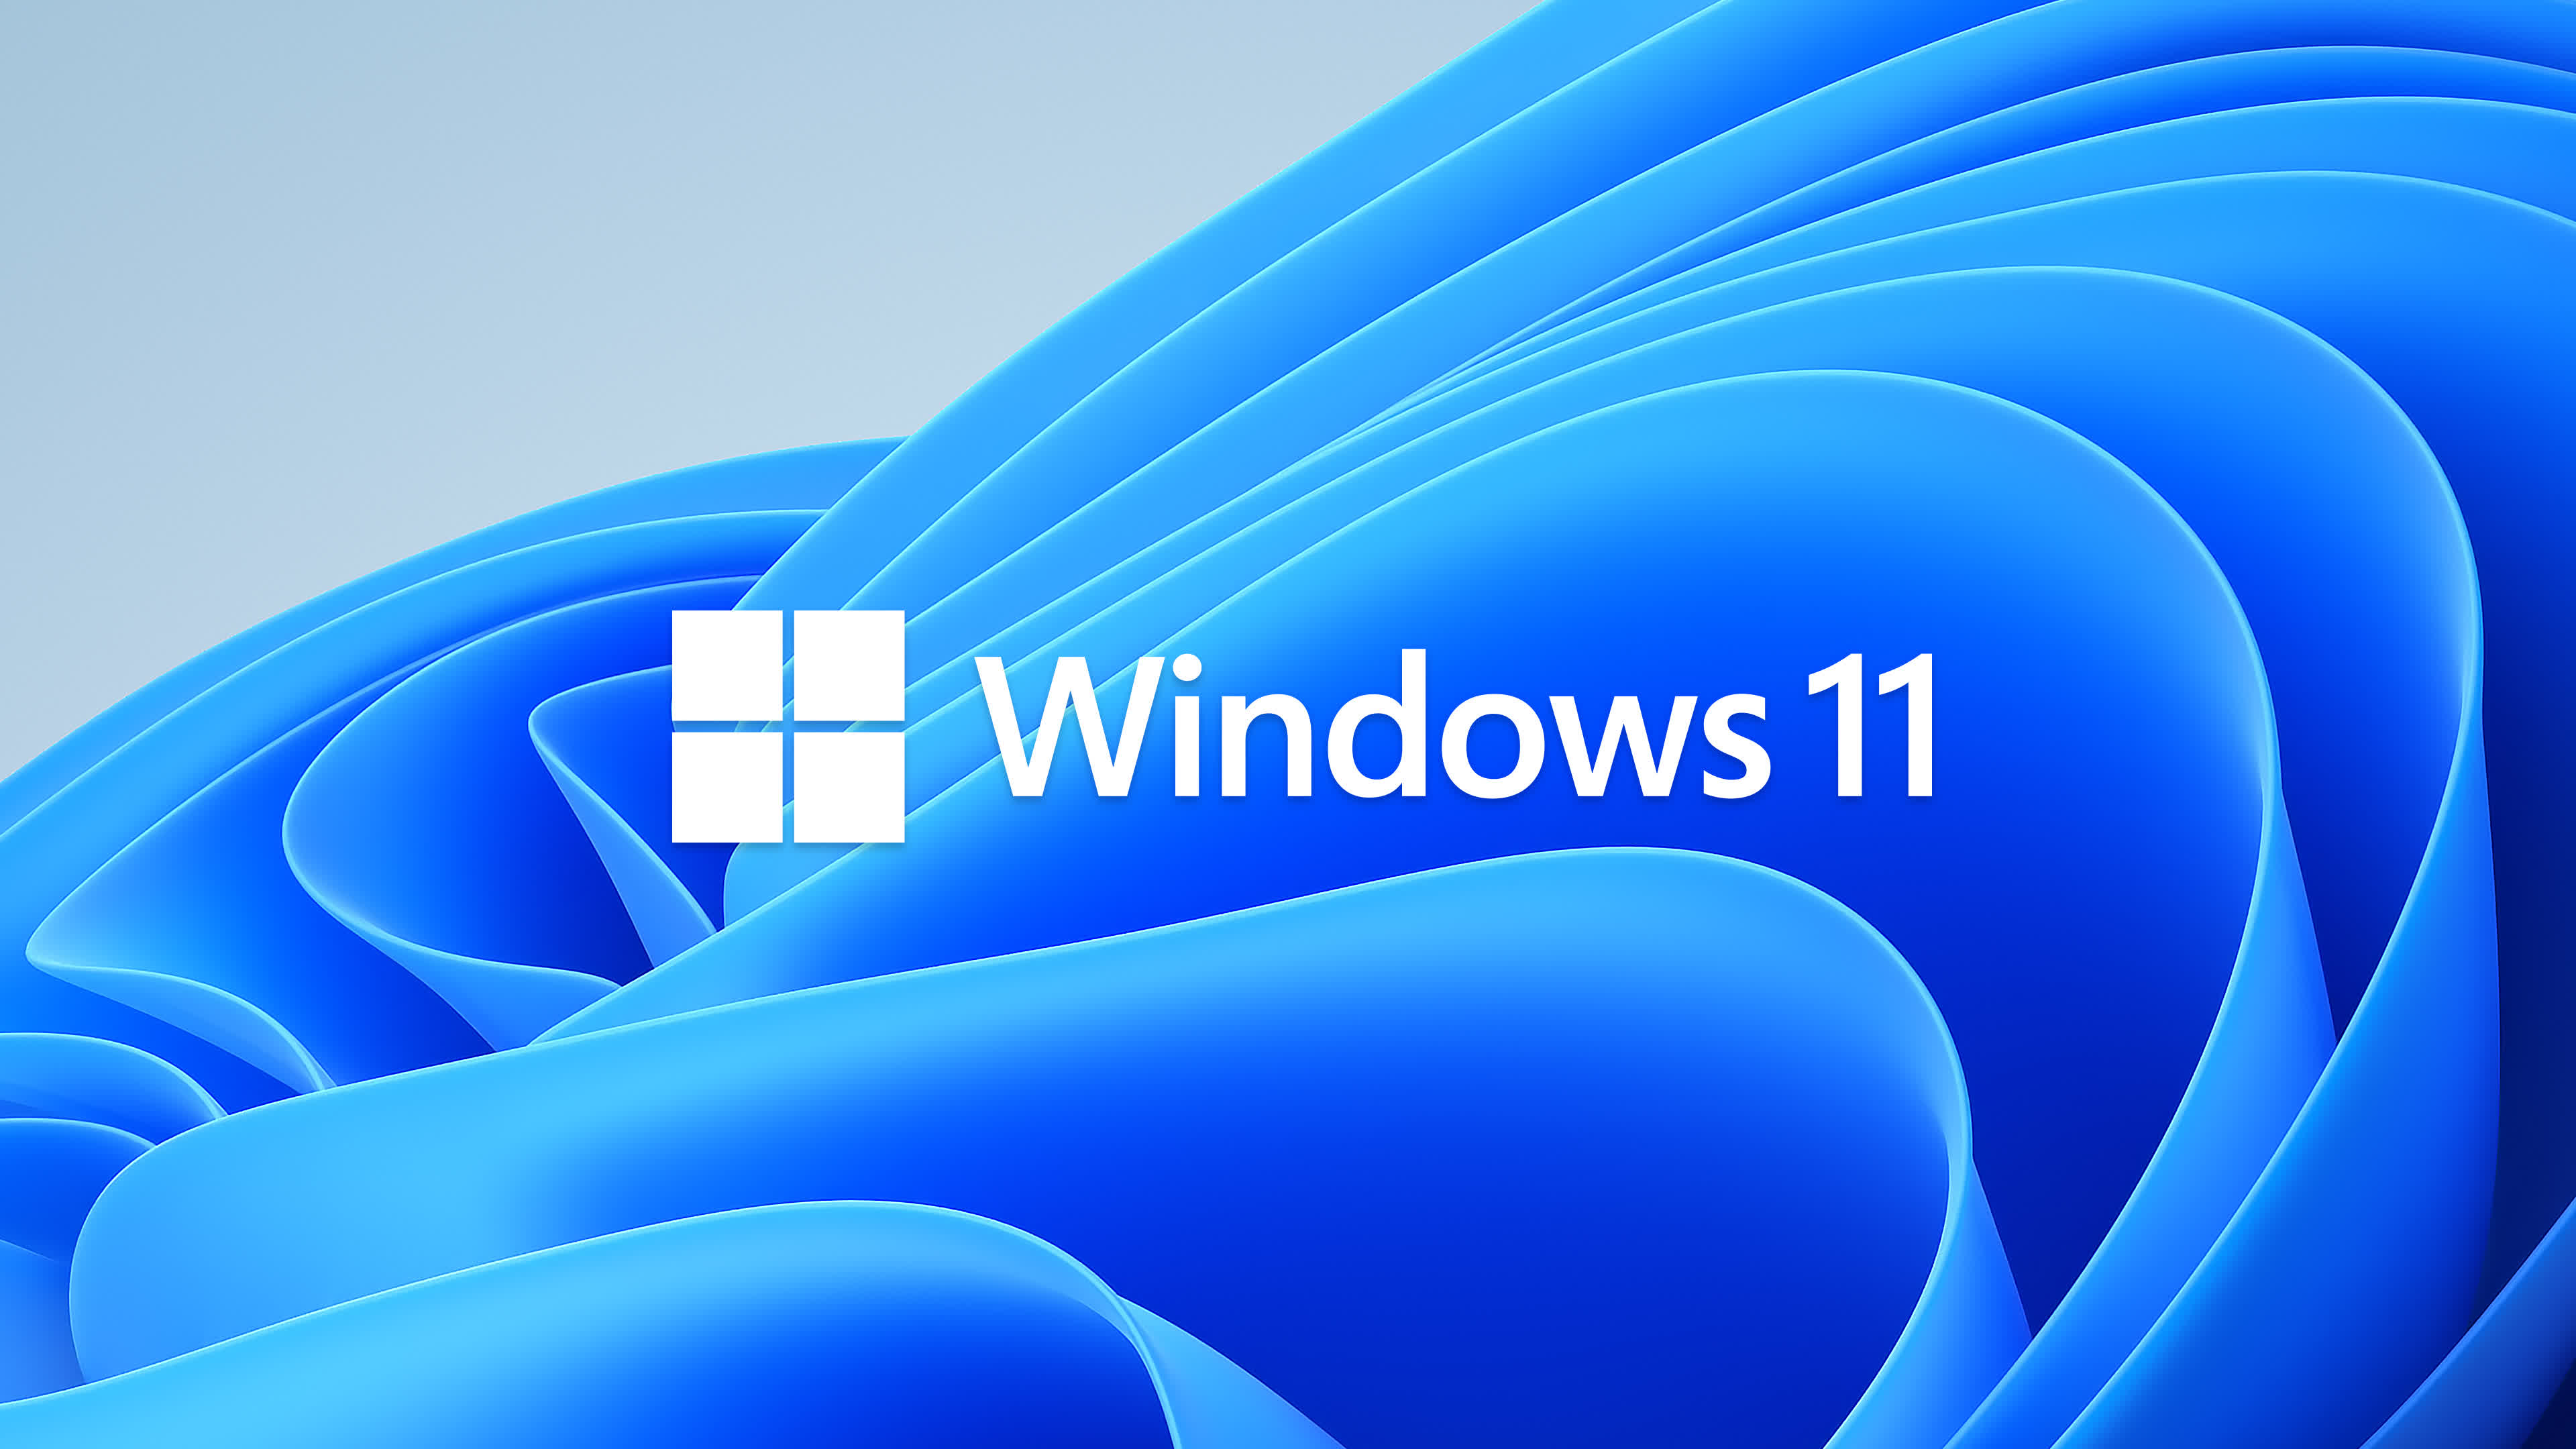 Microsoft tells Windows 11 Insider build users with unsupported PCs to reinstall Windows 10